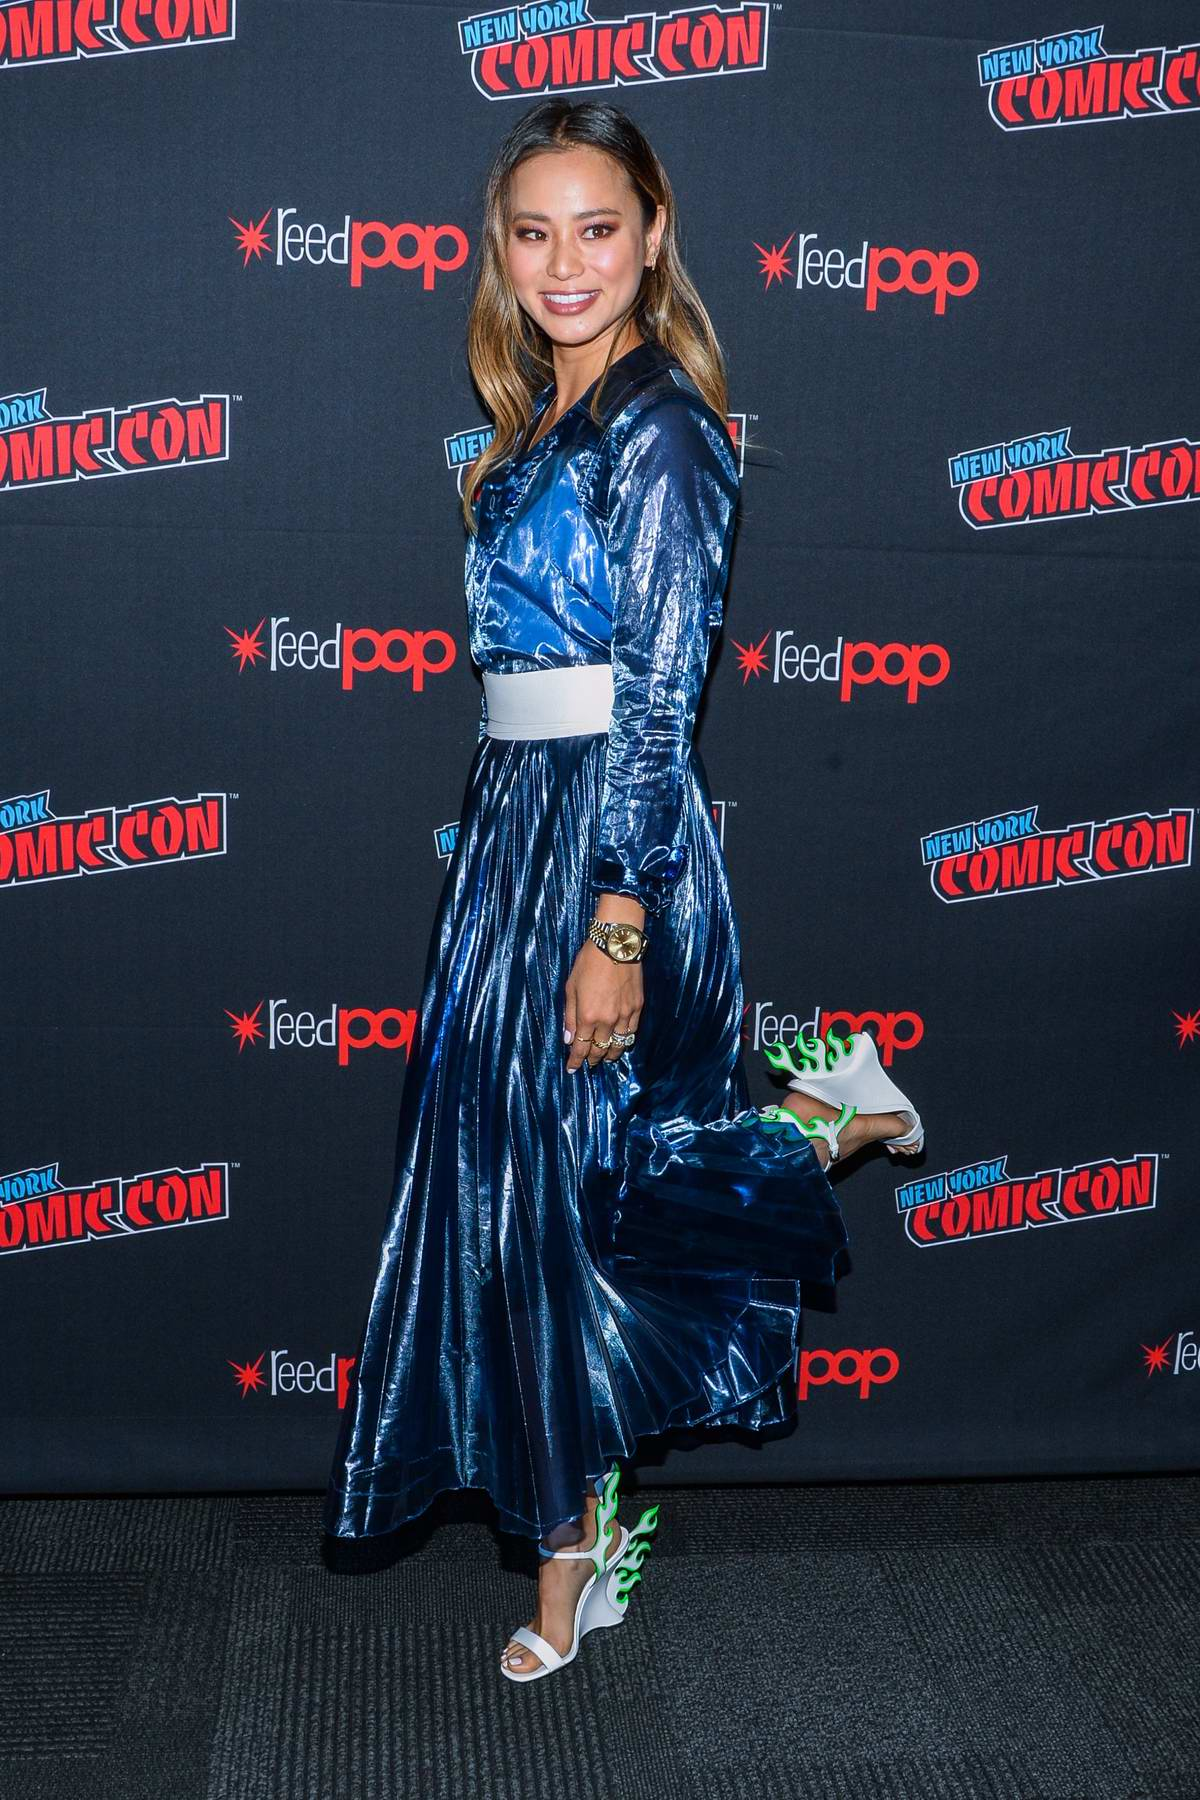 Jamie Chung attends 'The Gifted' photocall during New York Comic Con 2018 (NYCC 2018) in New York City